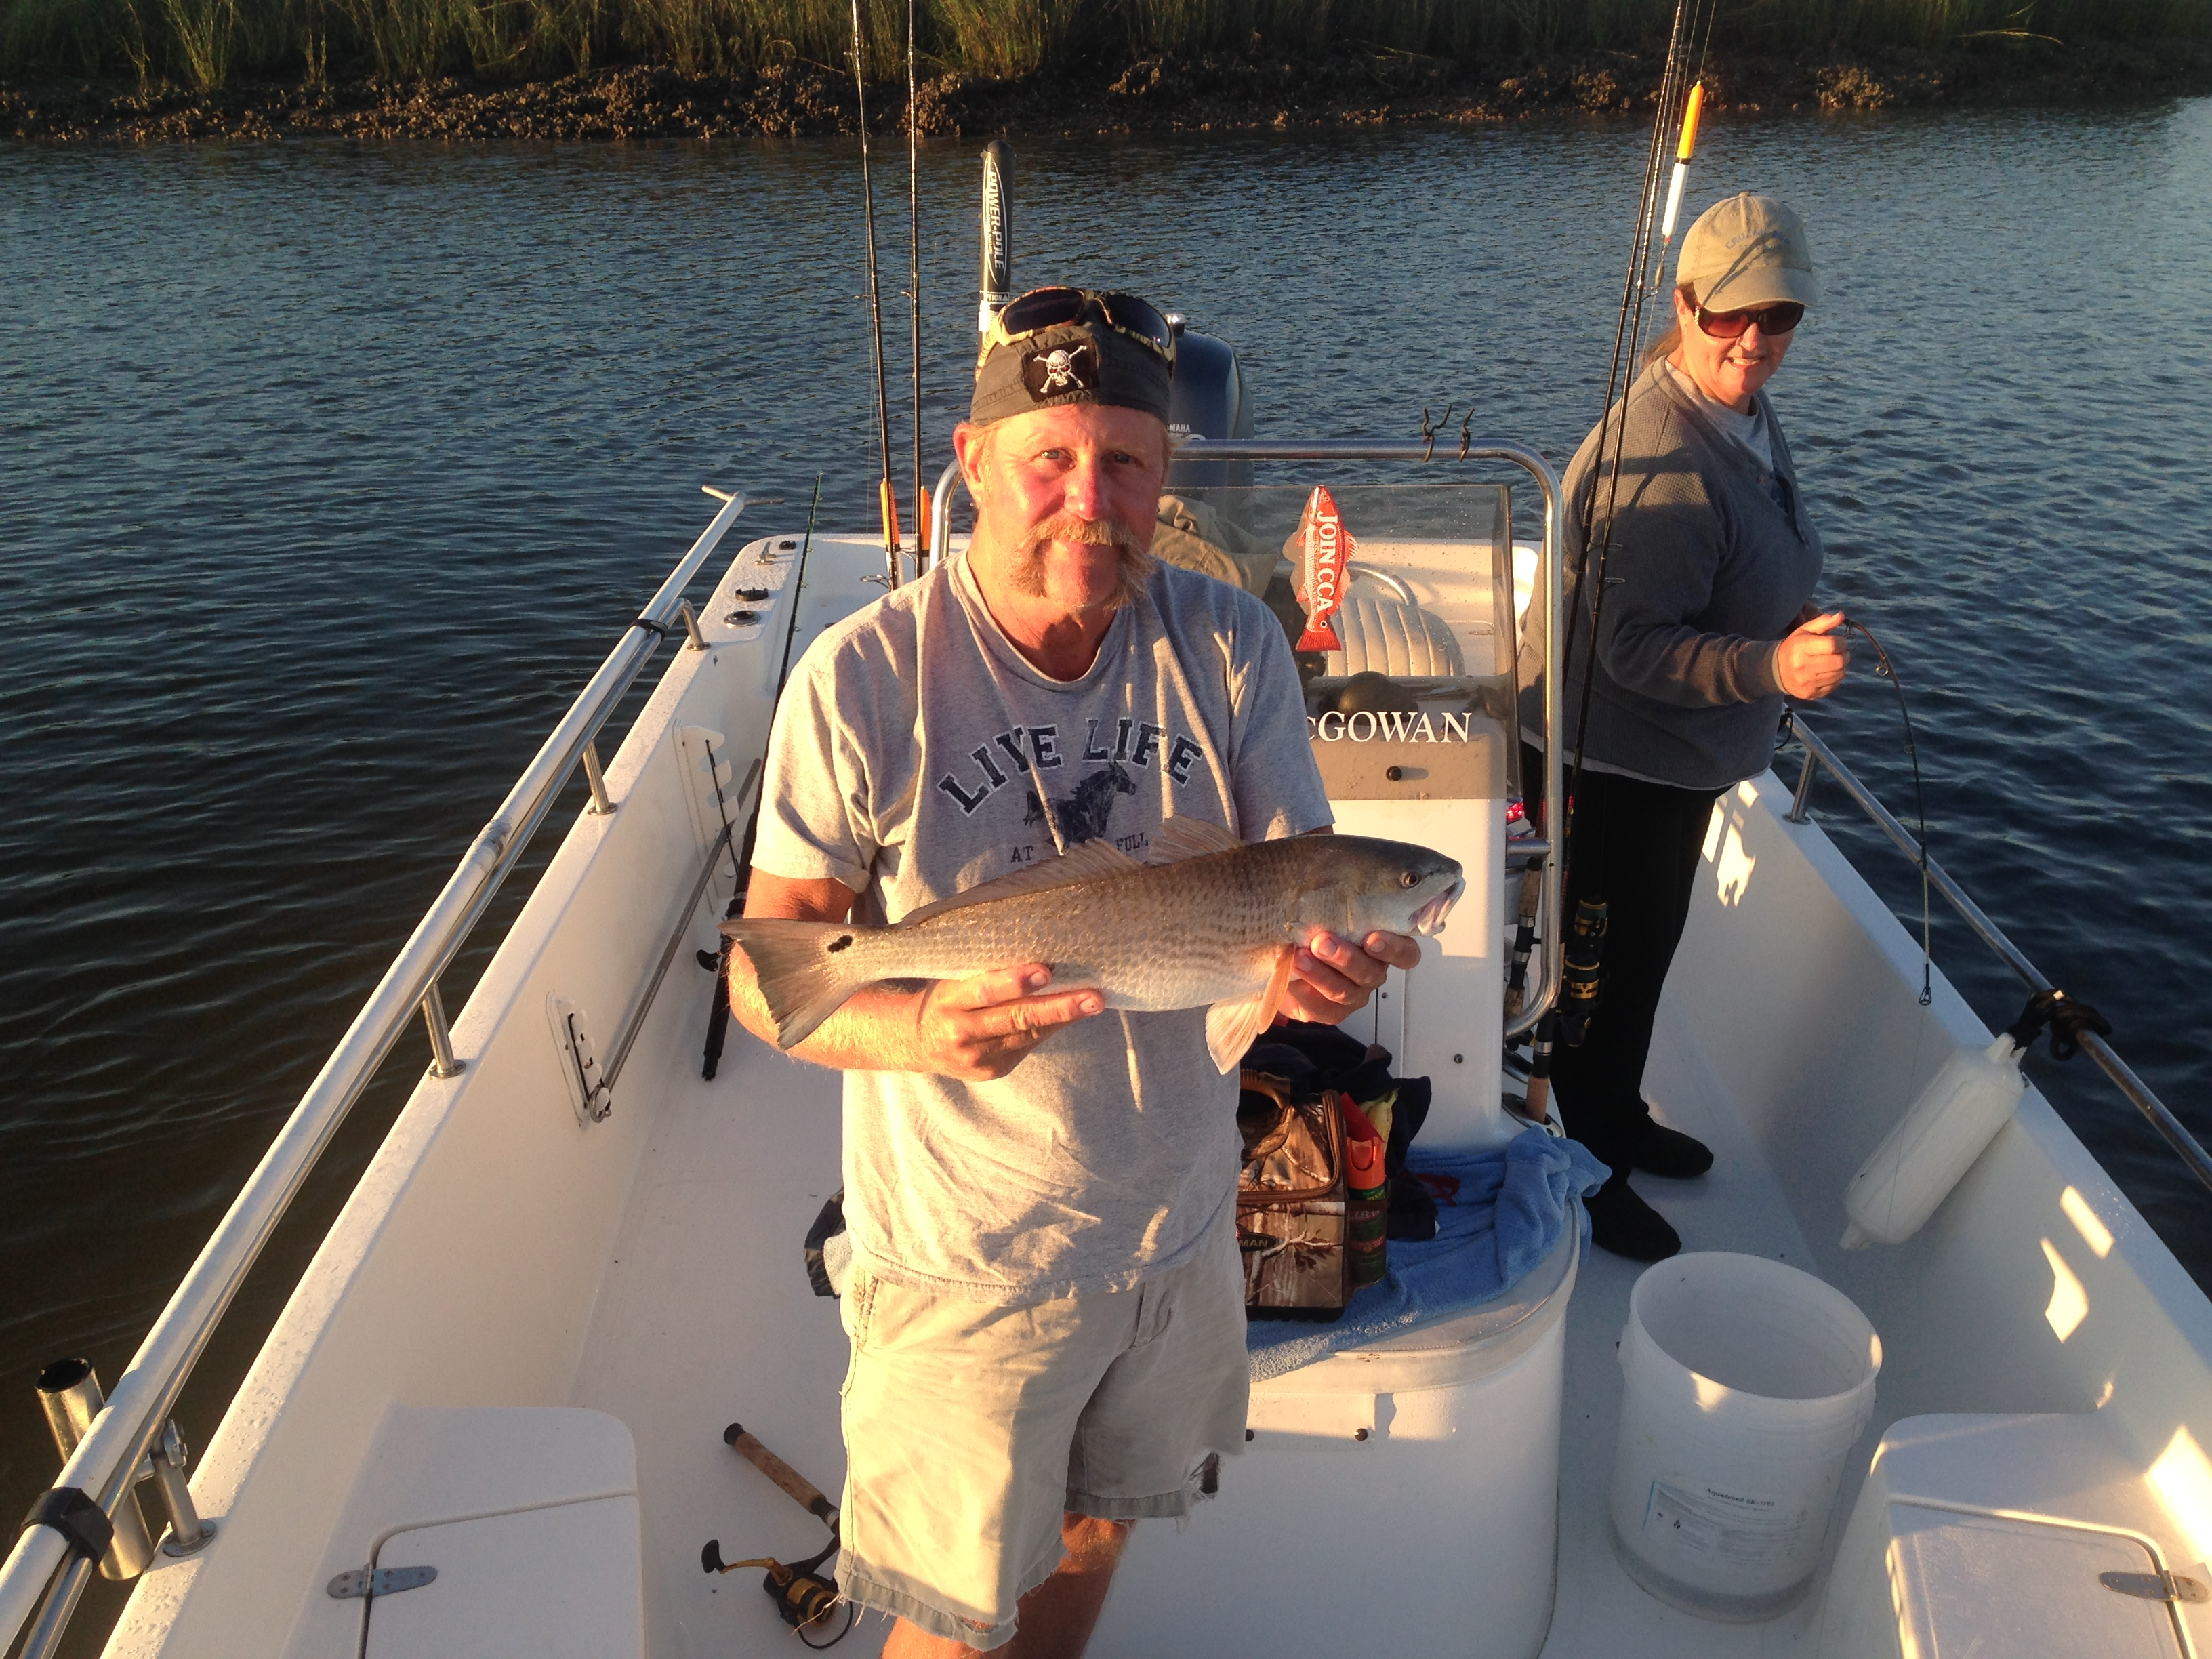 Mike Savage with a nice redfish! Angela is in the background with her red on the deck of the boat! Good fishing!